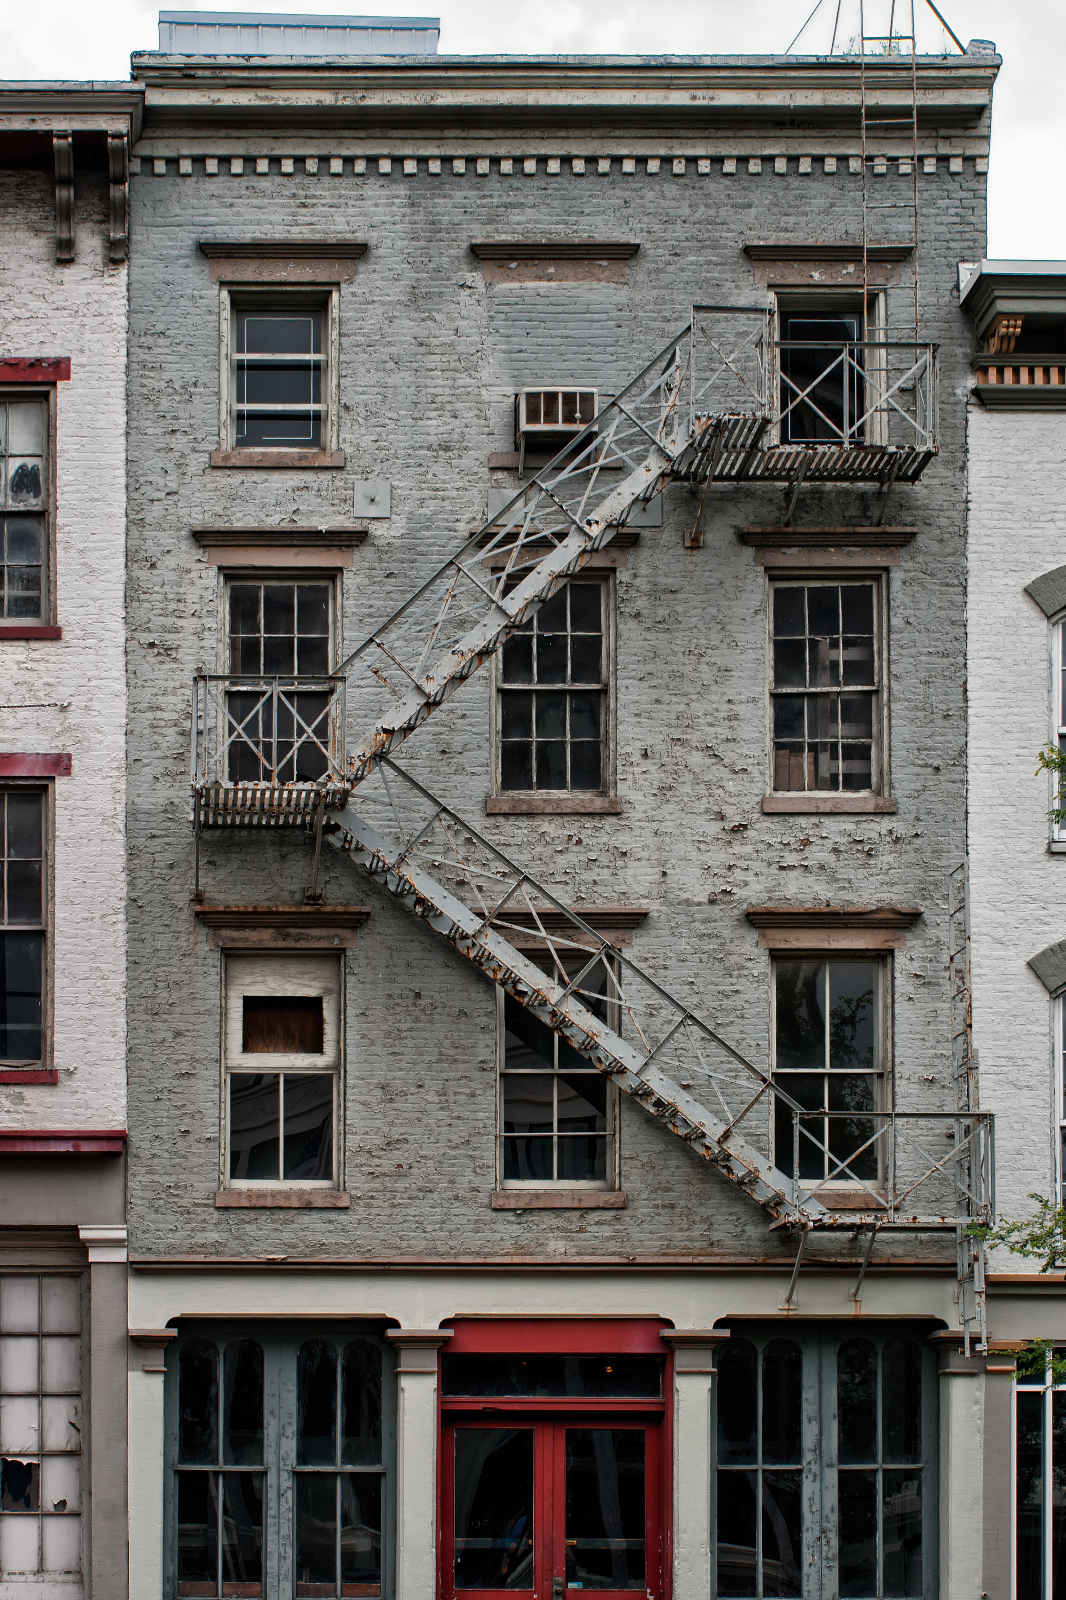 Building With A Fire Escape